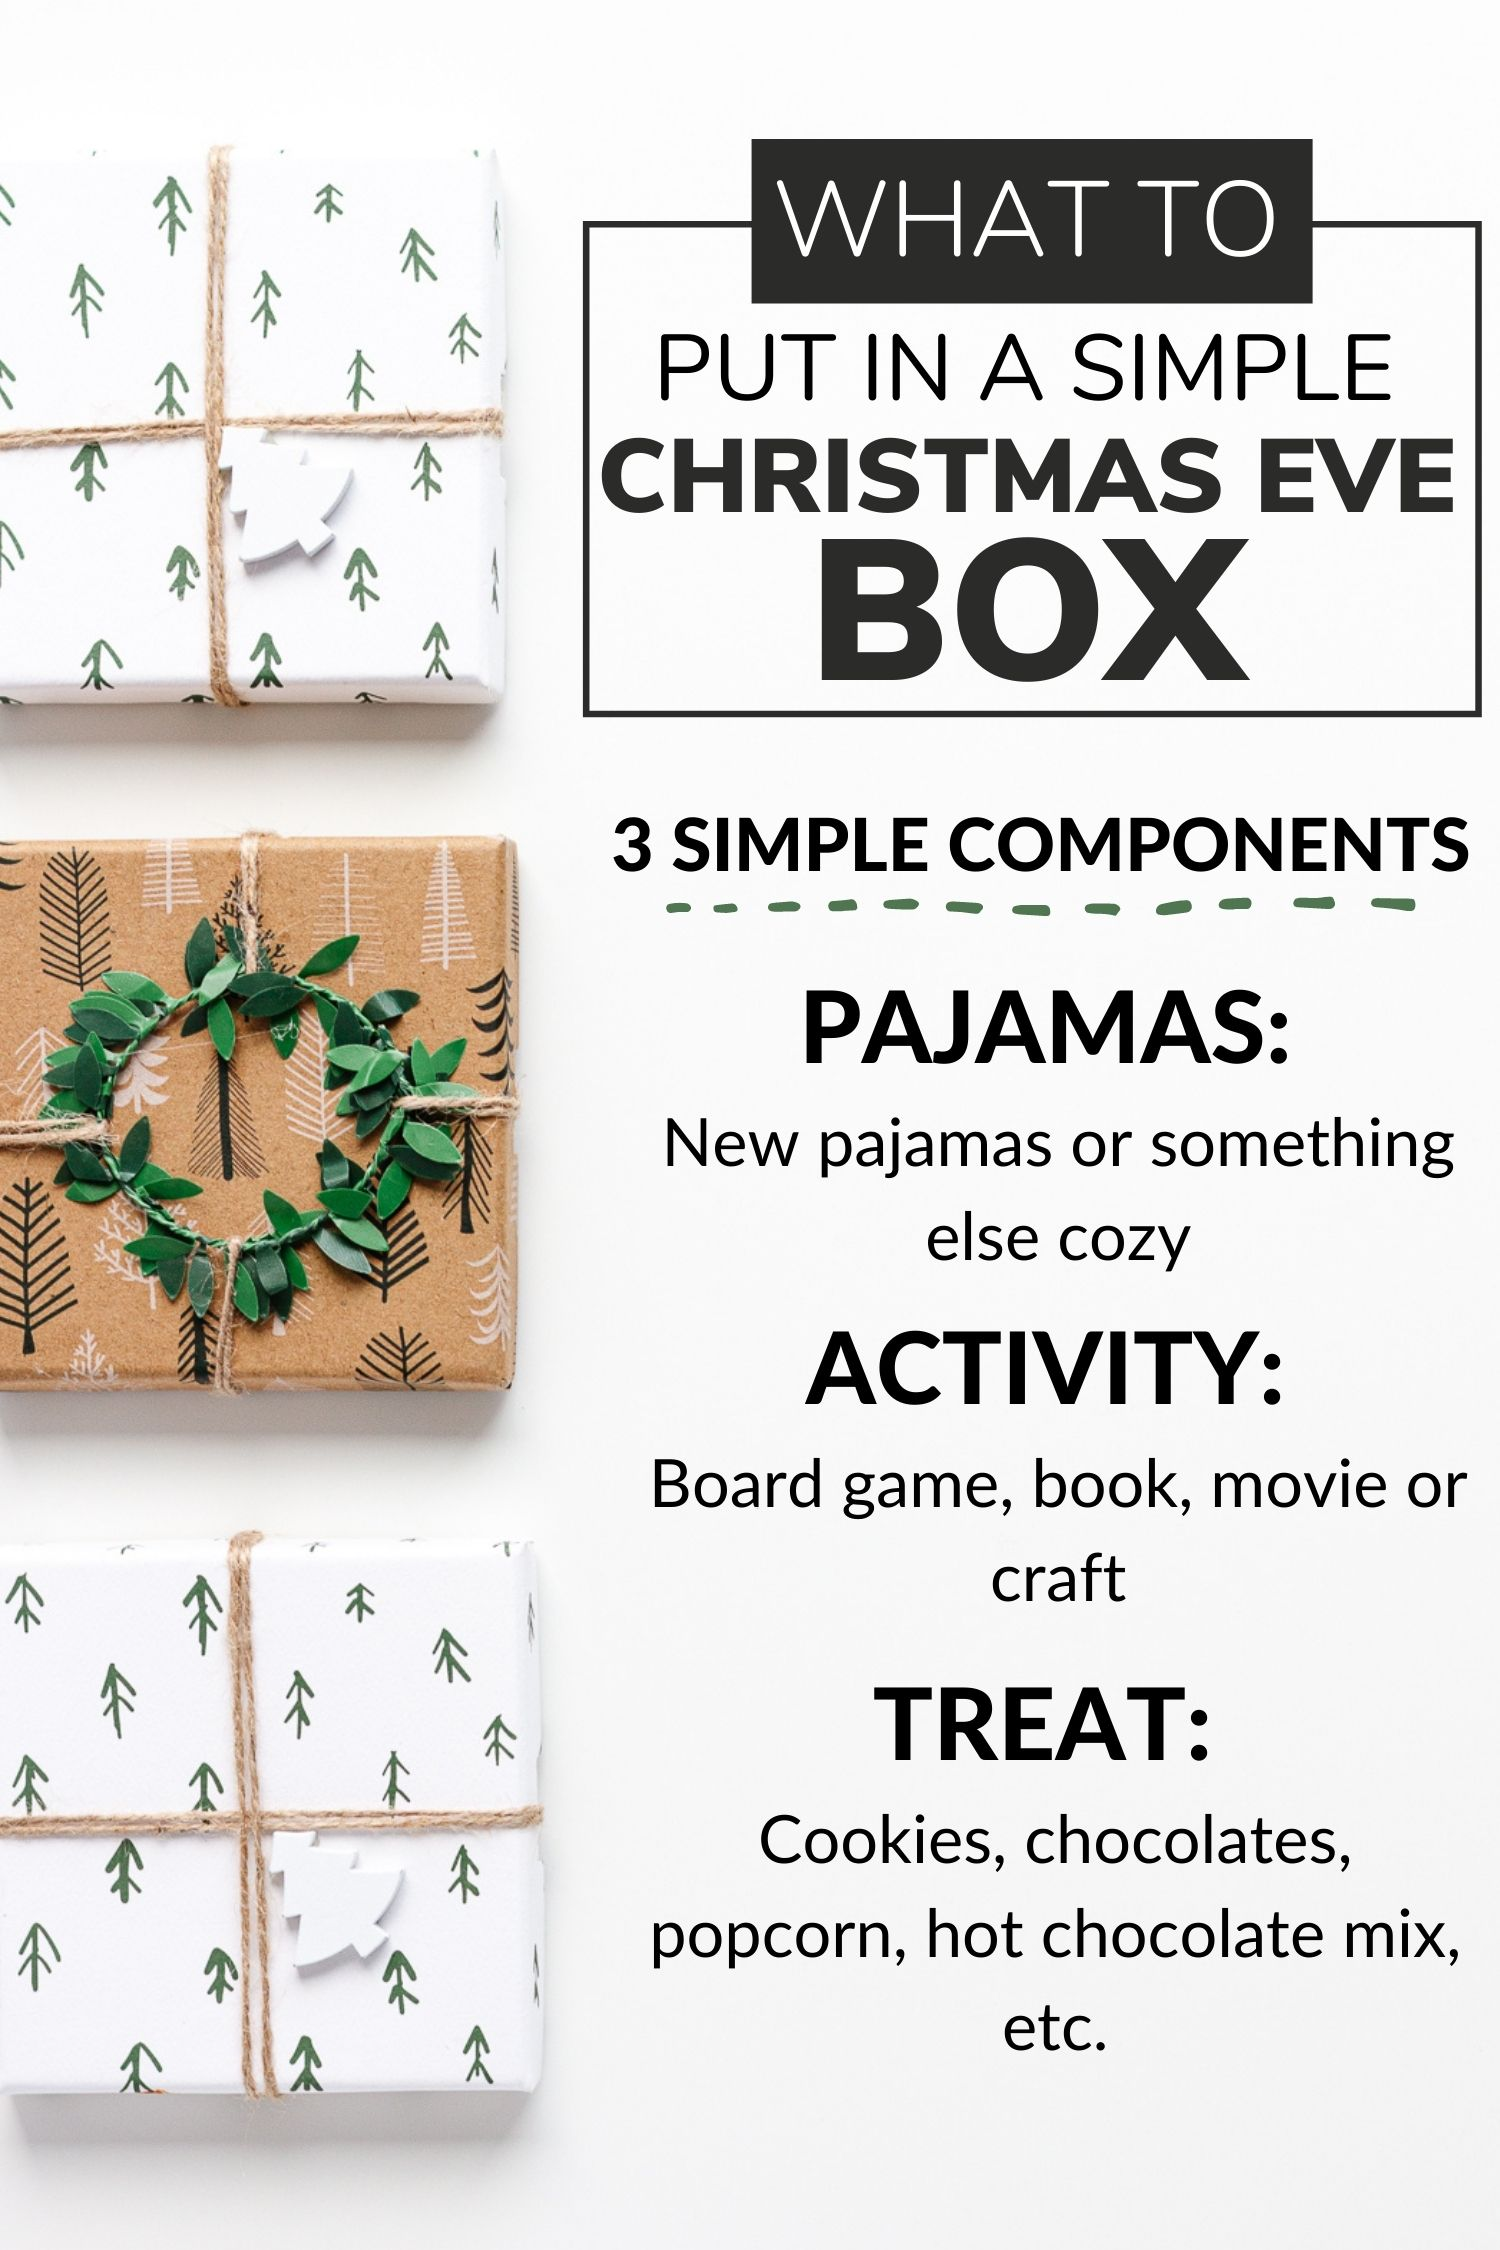 Infographic describing what to put in a simple Christmas Eve box.